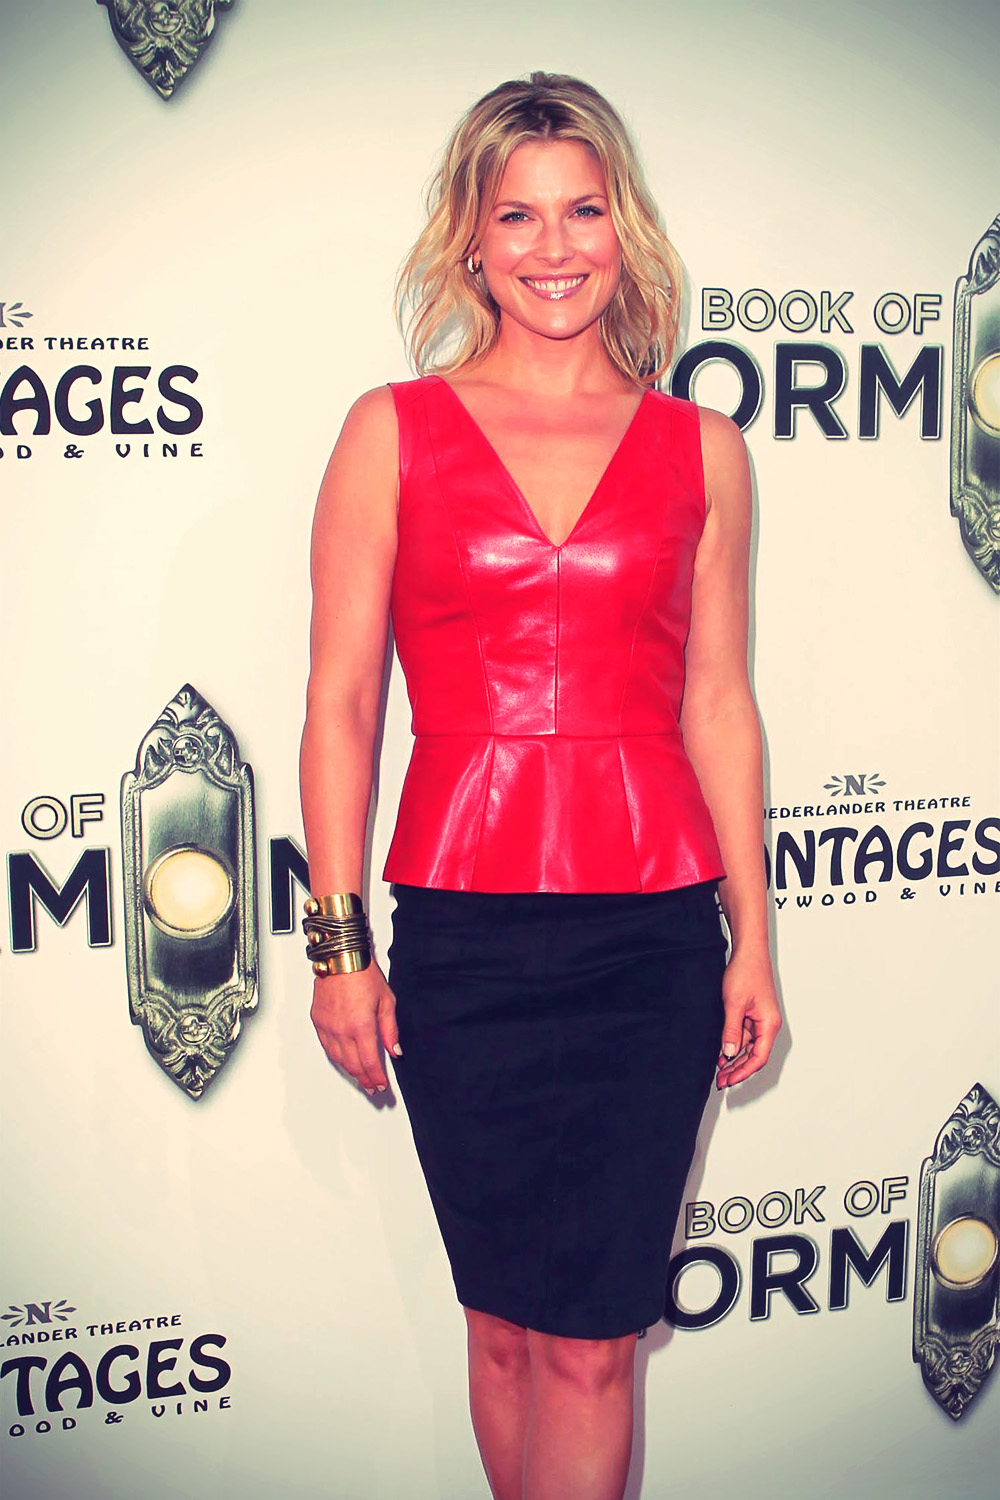 Ali Larter attends the Premiere of The Book Of Mormon